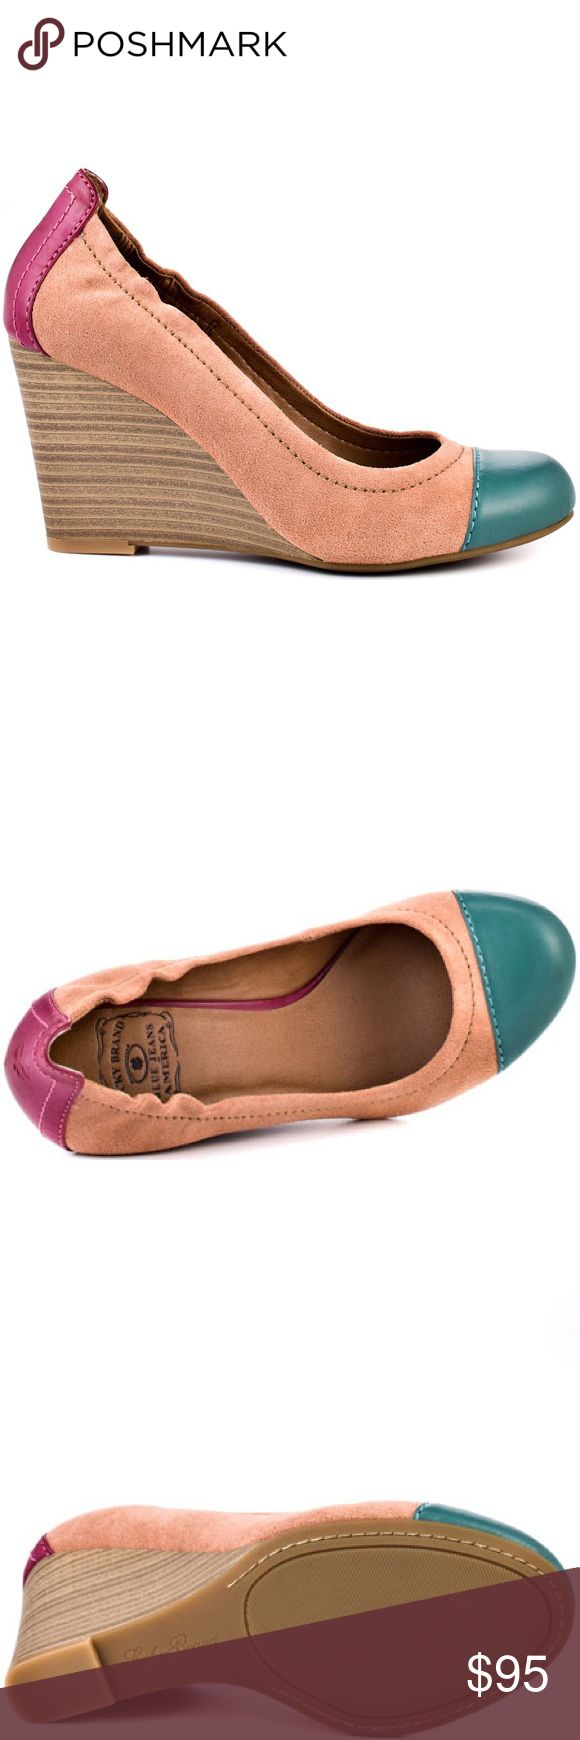 Lucky Brand Gabrielle Bermuda Sand Wedges Lucky Brand Gabrielle Bermuda Sand Wedges. Cute multi color pump. Blush suede upper with accents of green and pink leather. A 3 inch heel height will keep you comfy and finishes off this bright look. Leather Upper. Man Made Sole. This shoe fits true to size. NWT! 👗Fab Ab's Closet; Re-Styled Resale 👗 🎀15% Off 3+ Item Bundles🎀 👉🏻Please Use Offer Button👈🏻 ❌NO PP, TRADES, HOLDS❌  🛍Items Always 100% Authentic🛍 ✔️Excellent Pre-Owned Condition✔️…